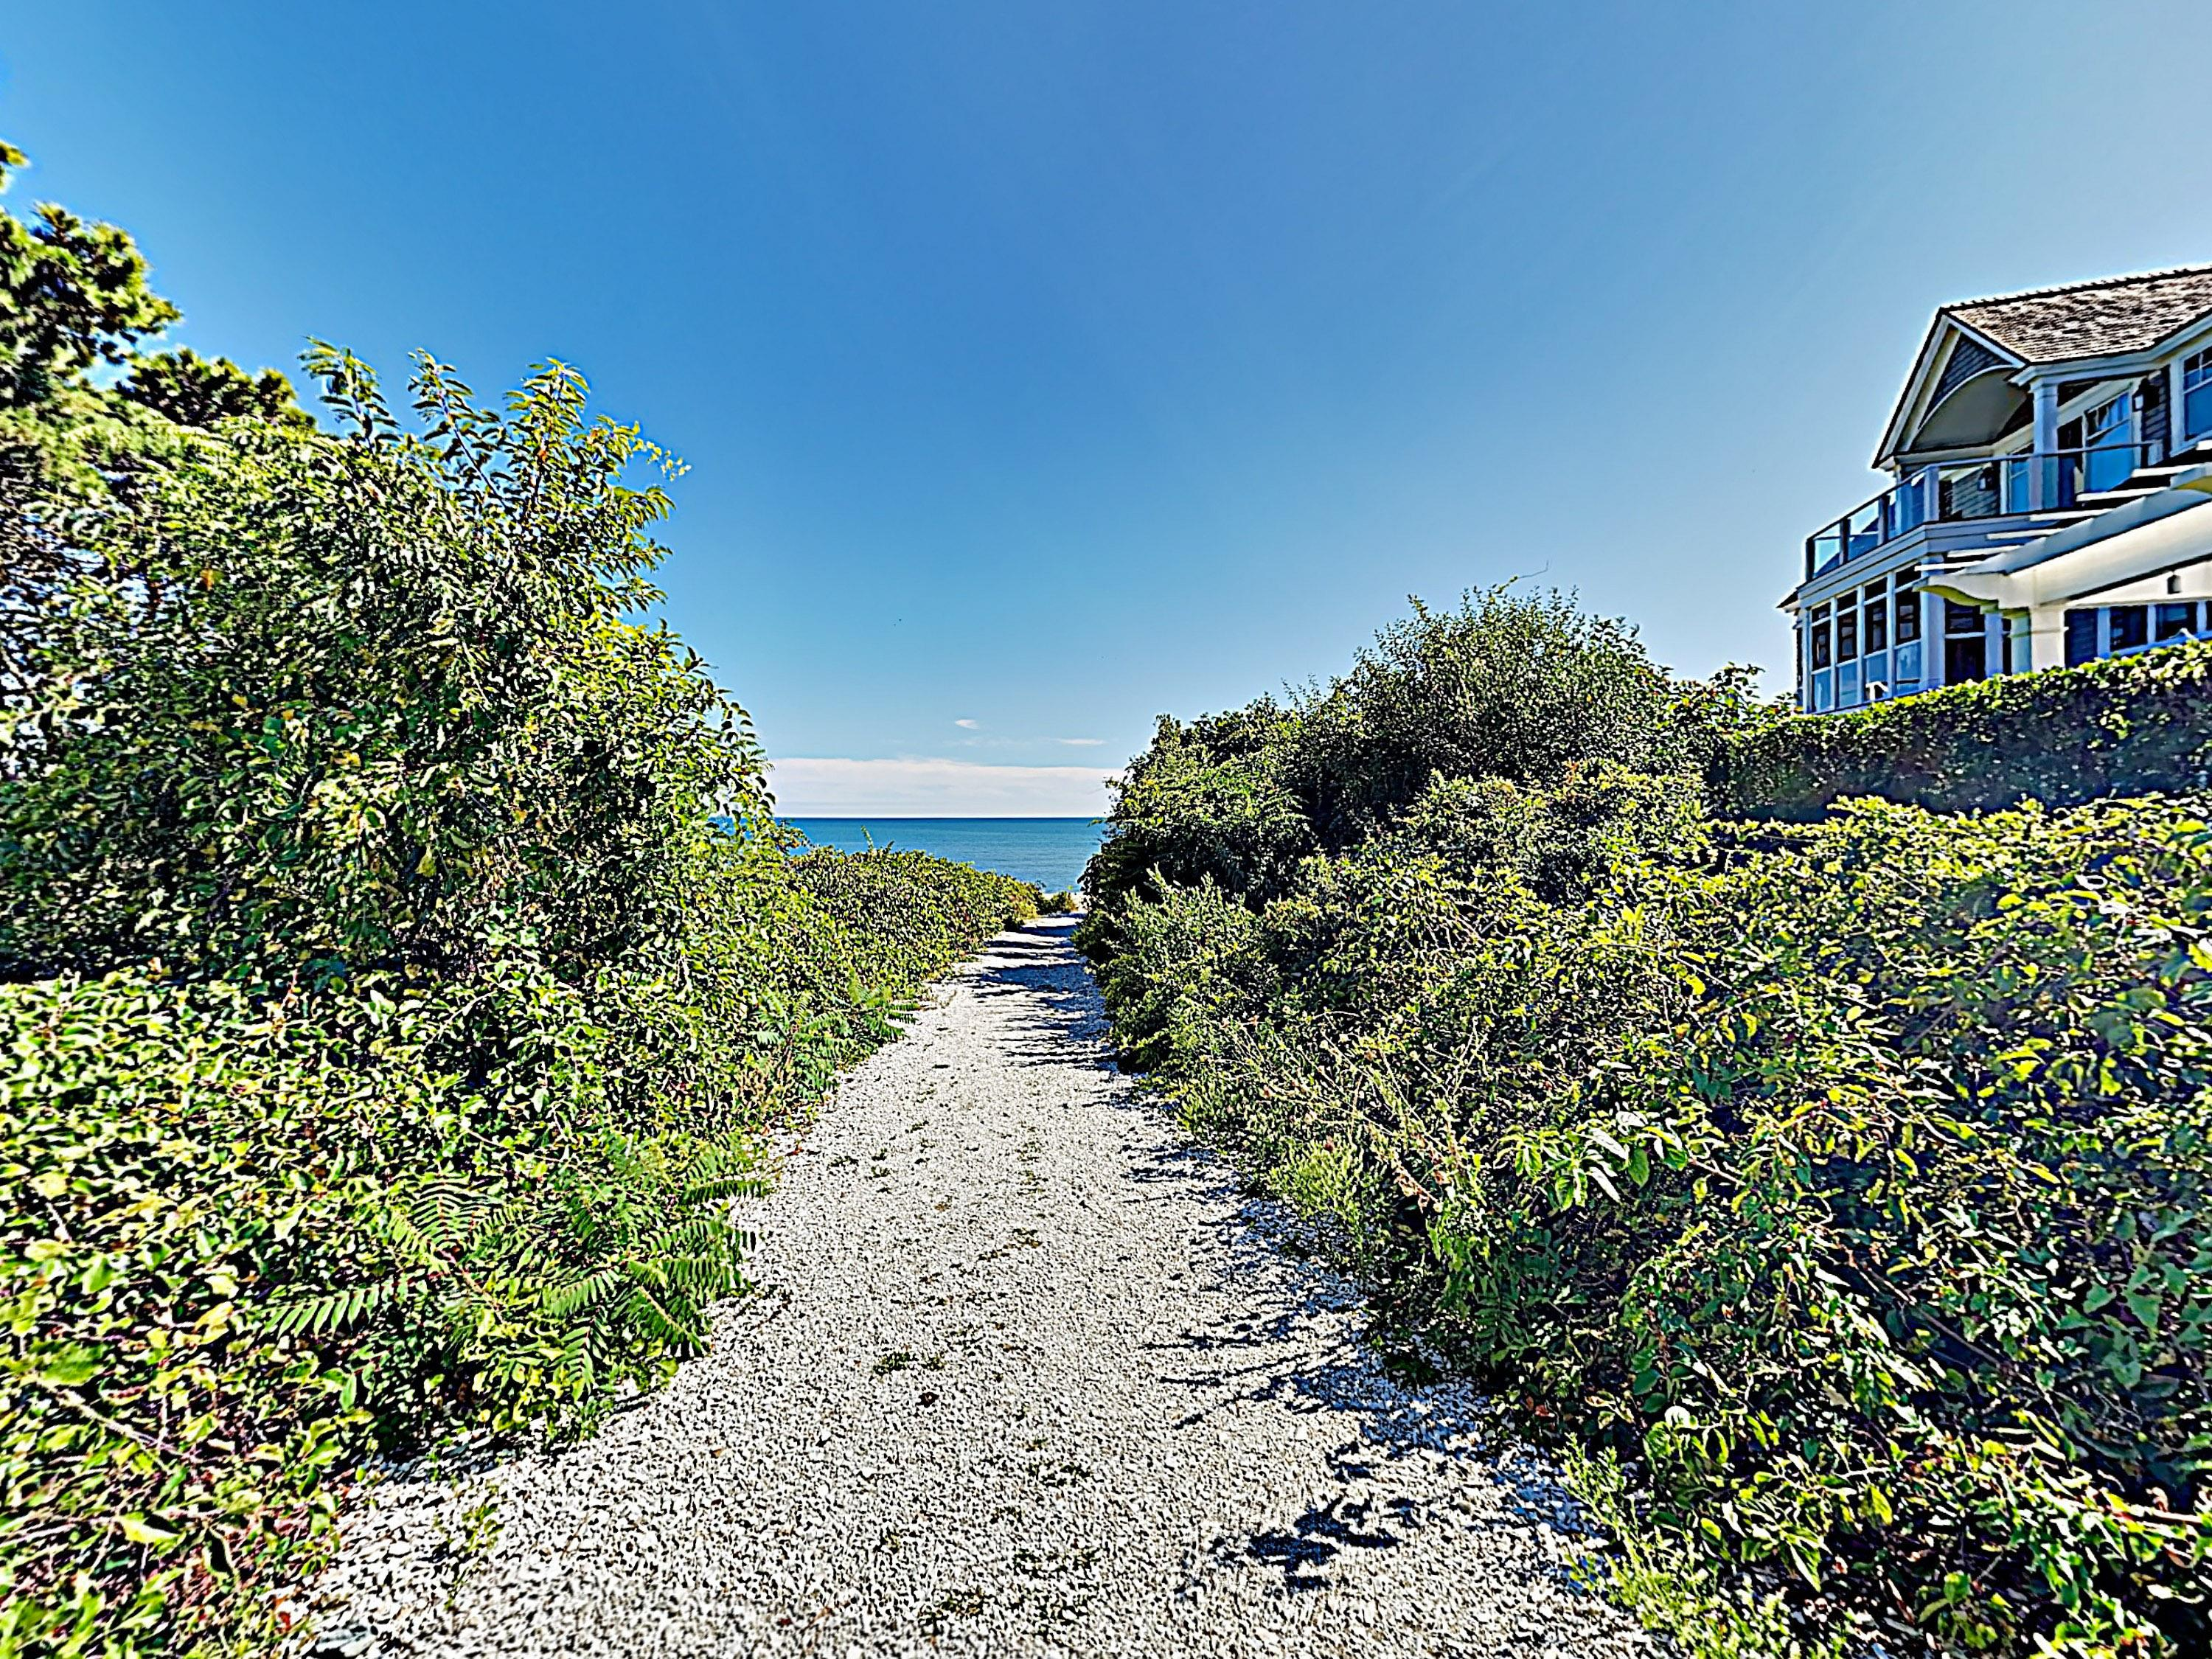 Take a stroll down to the private beach, just 100 yards away.